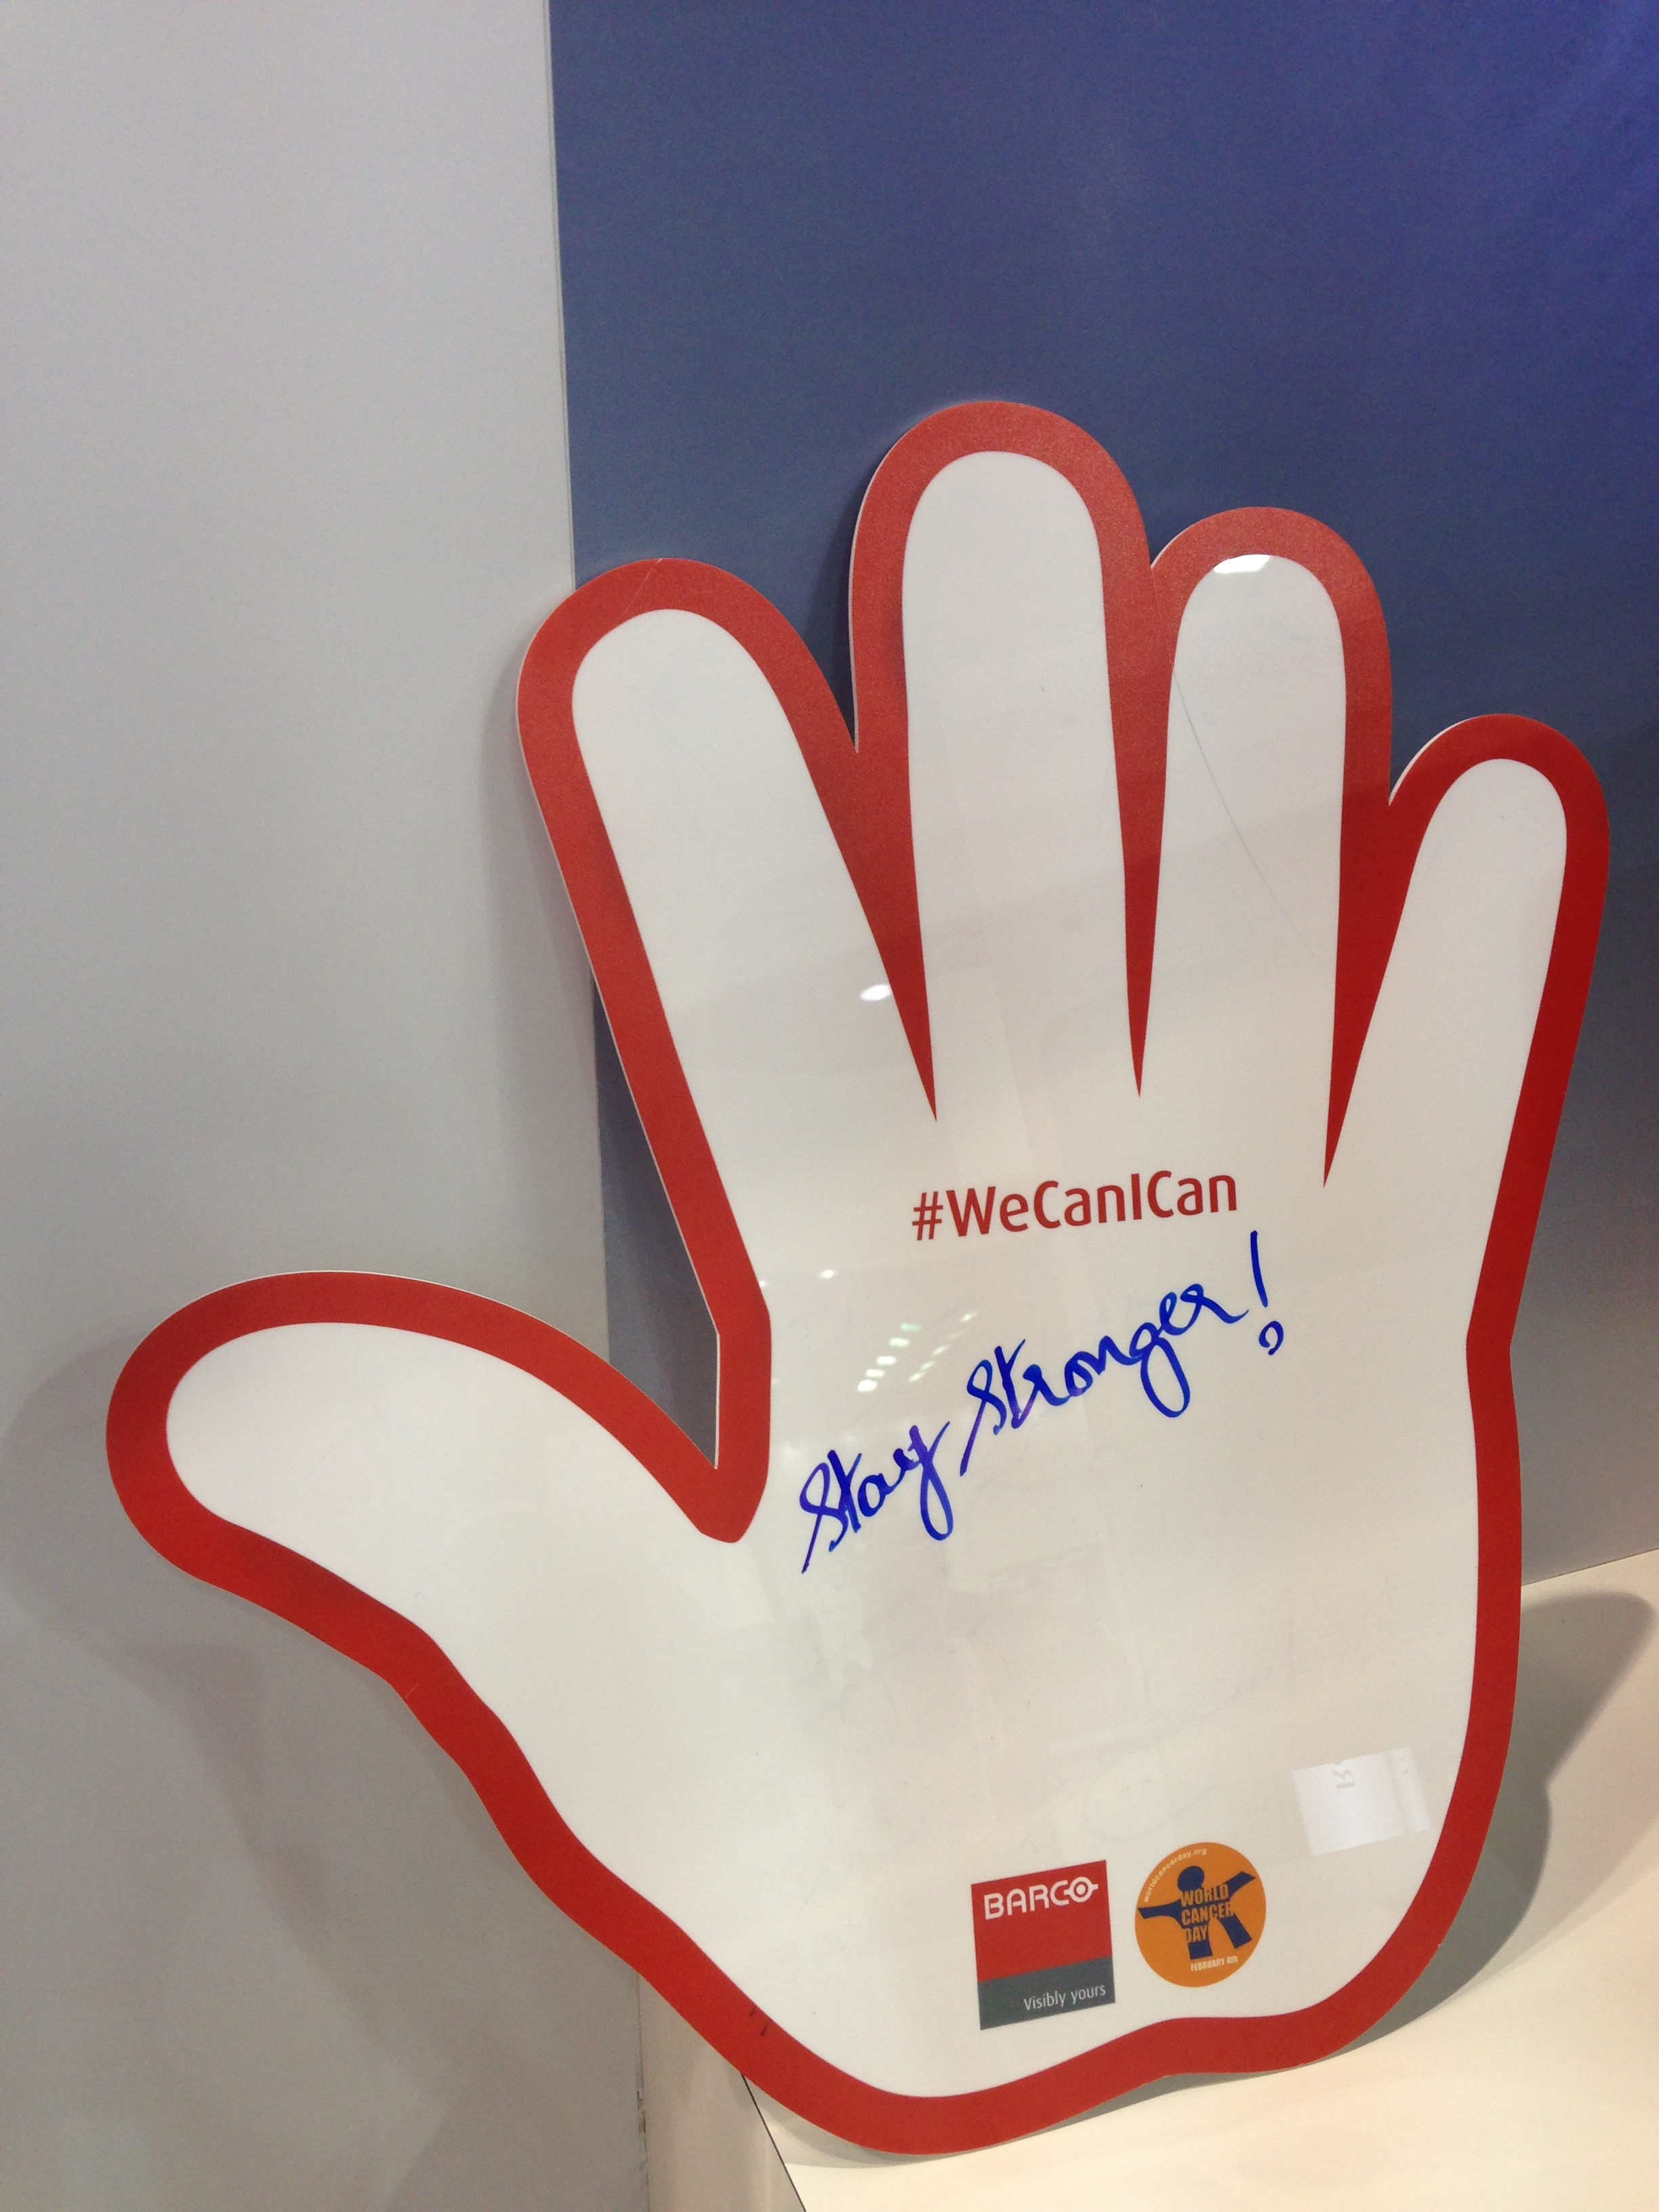 Barco supports World Cancer Day with Talking Hands campaign #WeCanIcan